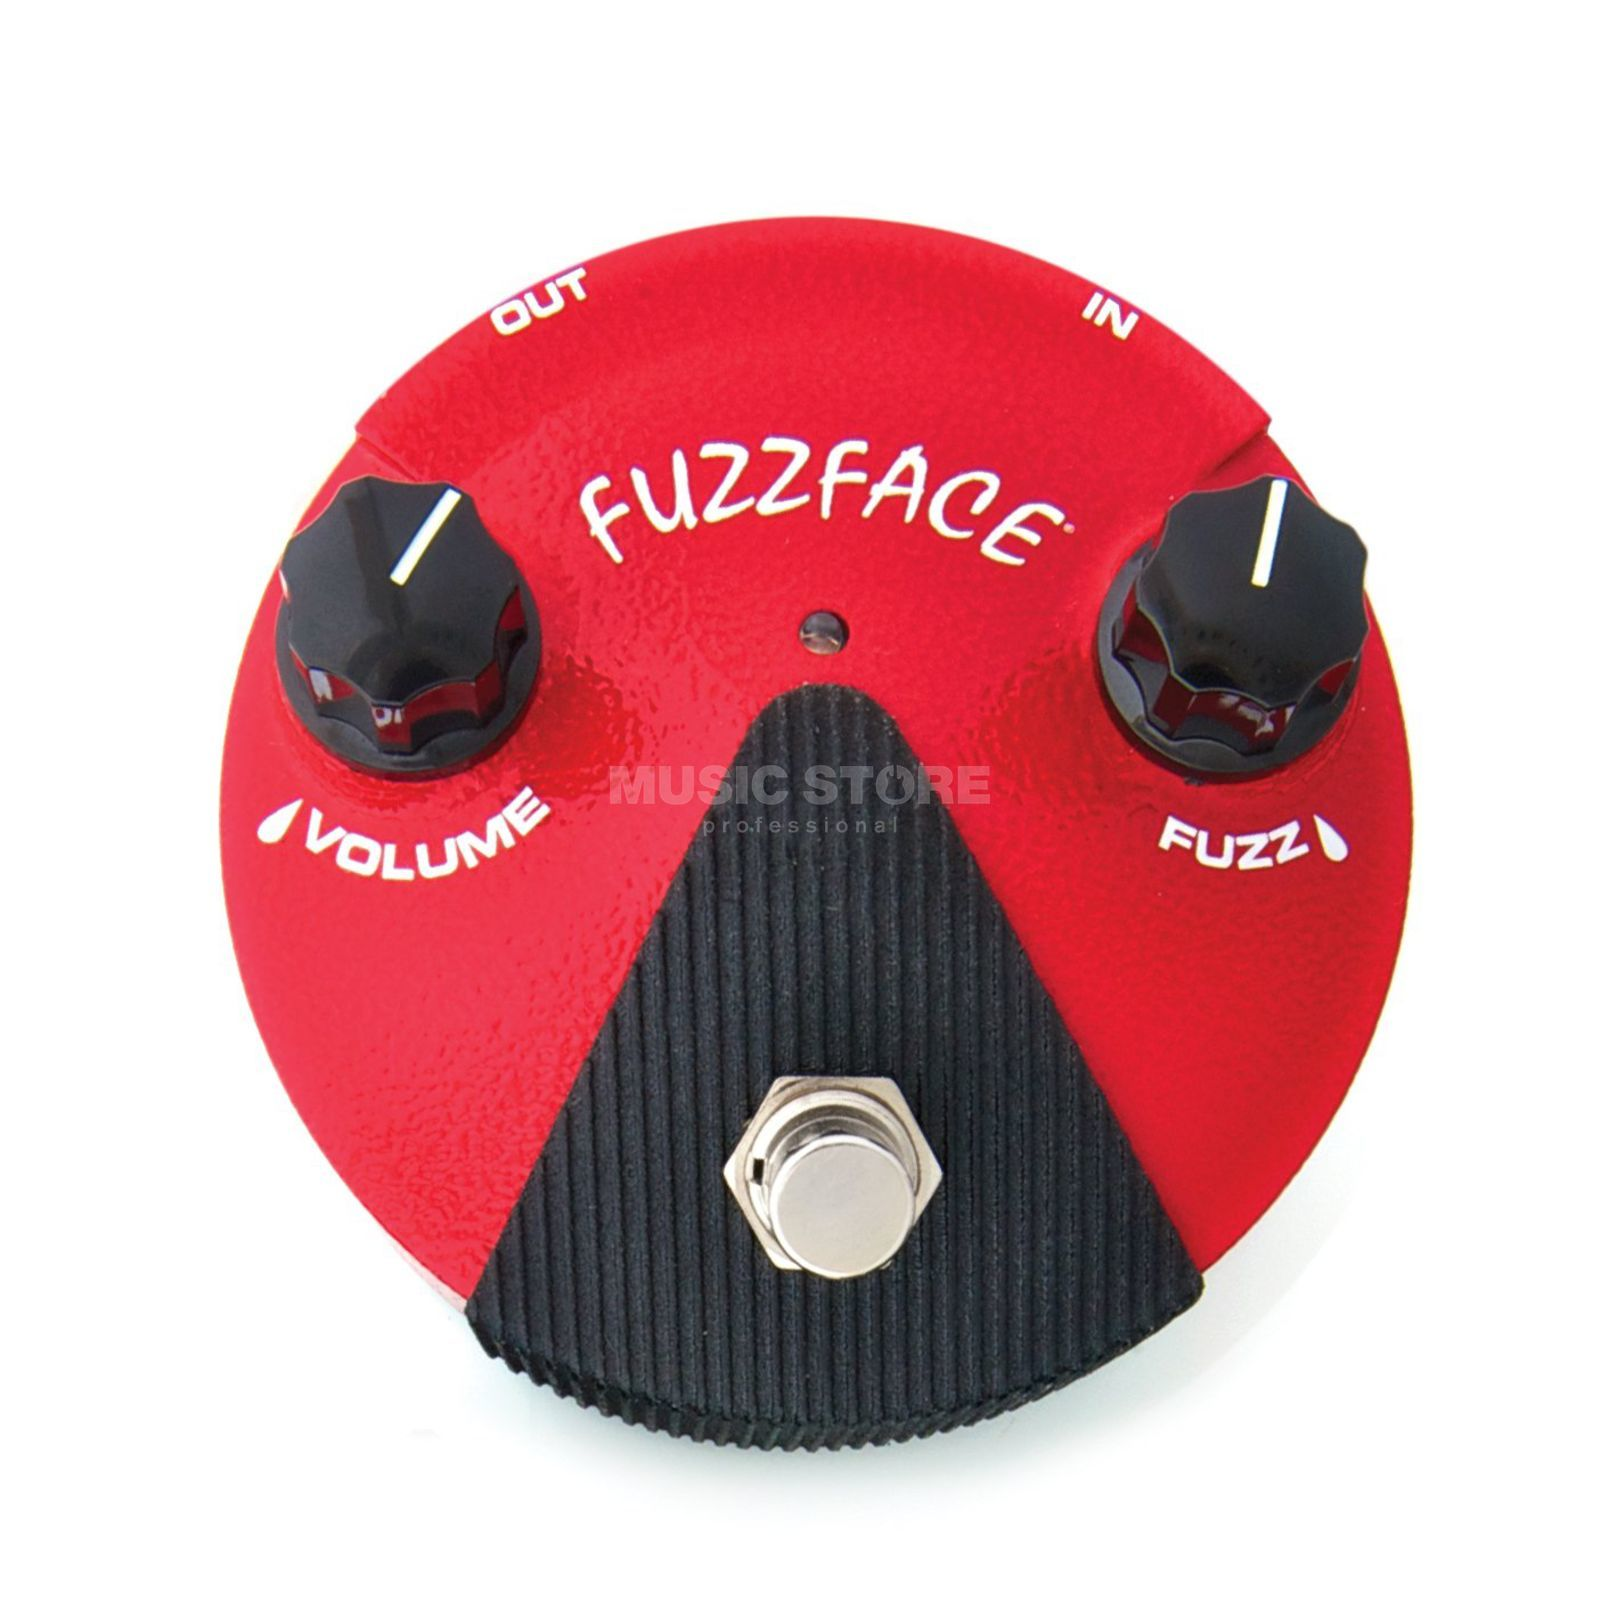 Dunlop Germanium Fuzz Face Mini Red FFM 2 Produktbillede